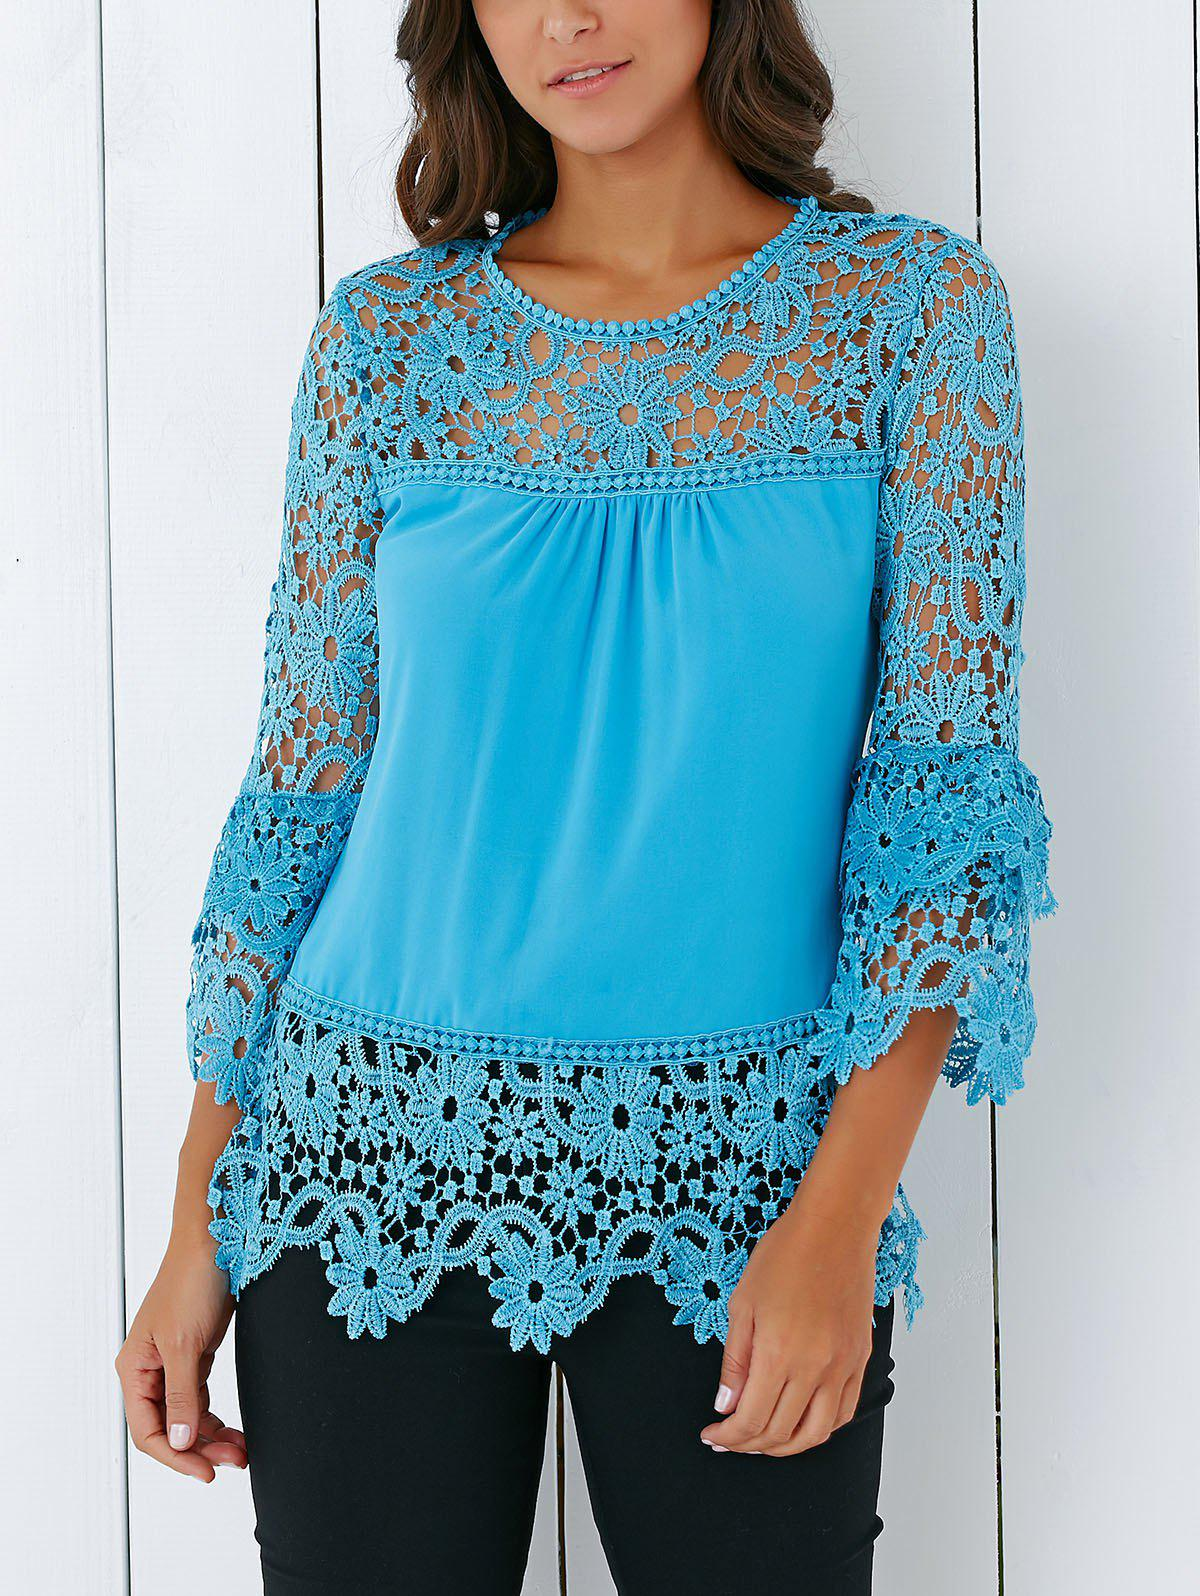 Stylish 3/4 Sleeve Lace Spliced Hollow Out Crochet Blouse